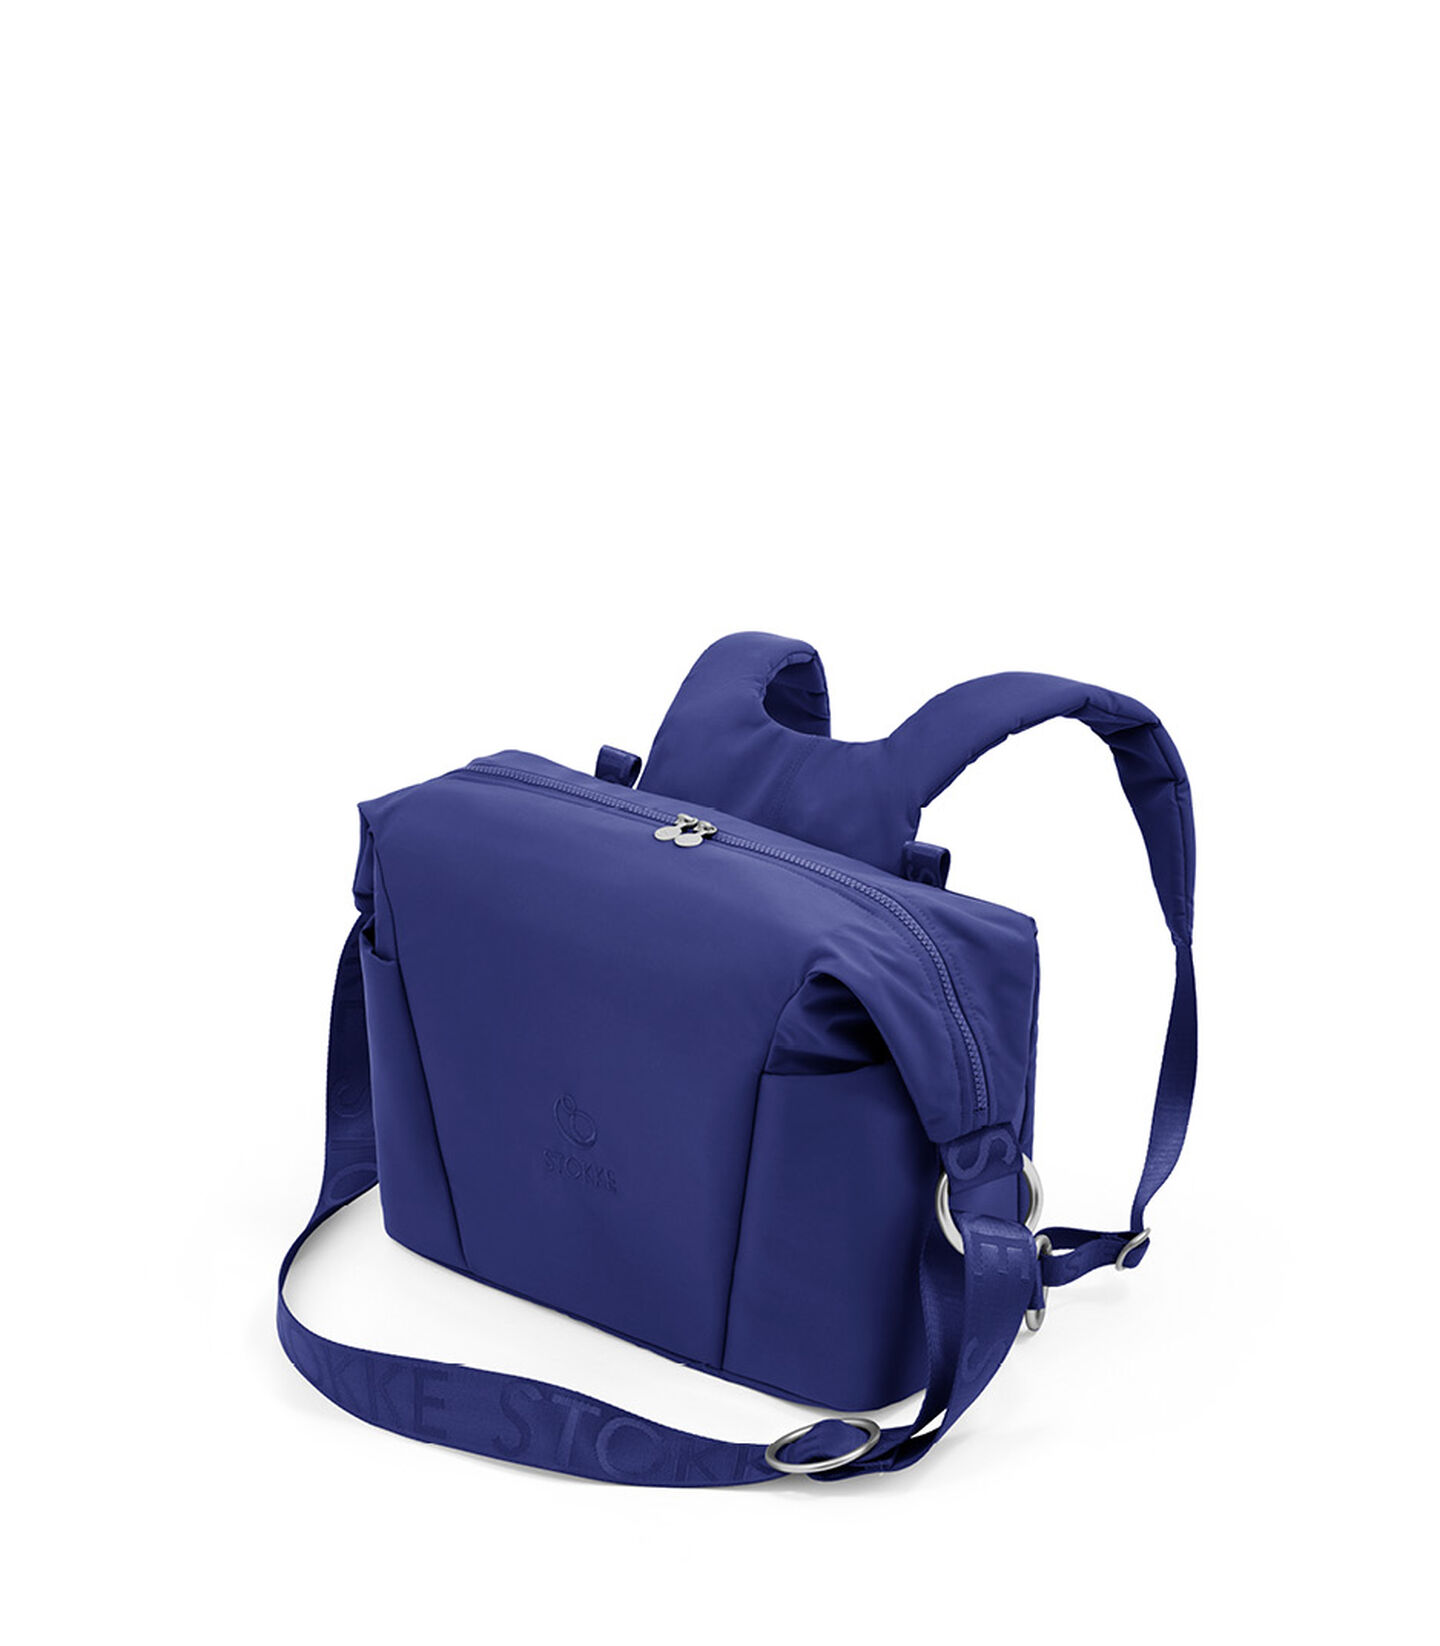 Stokke® Xplory® X Changing bag Royal Blue, Azul Real, mainview view 2